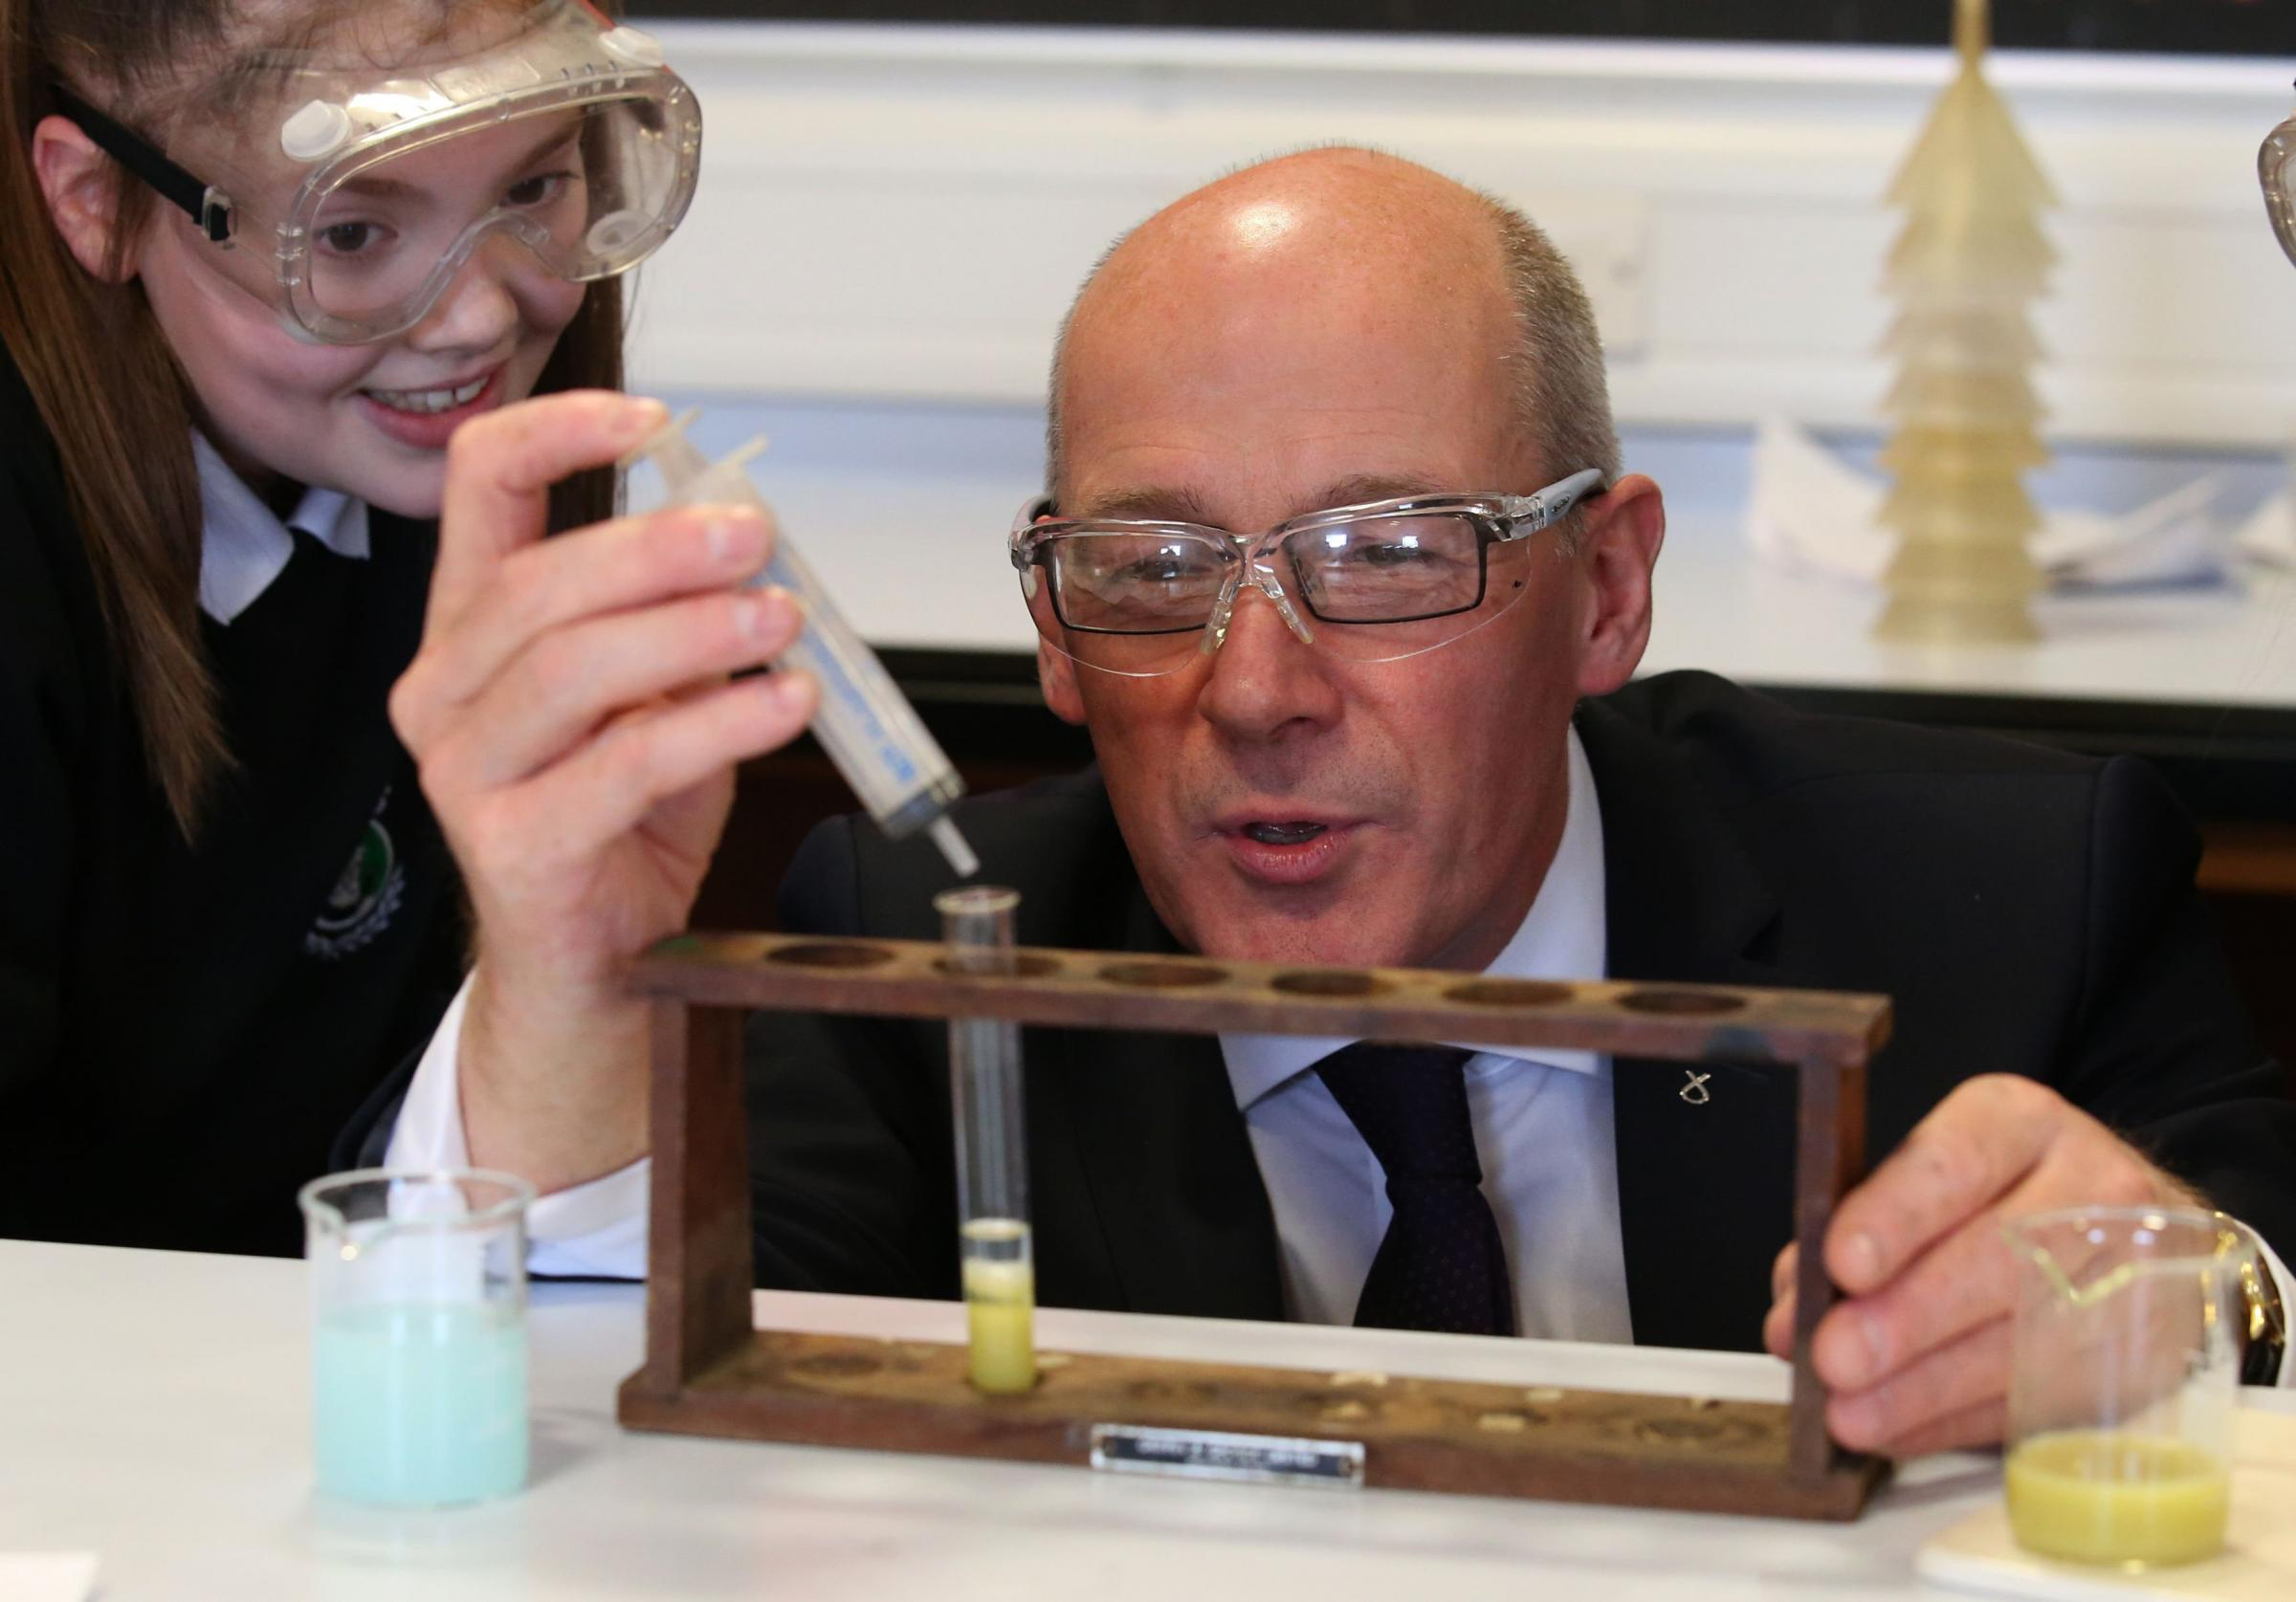 John Swinney on a visit to his former school, Forrester High in Edinburgh, May 2016